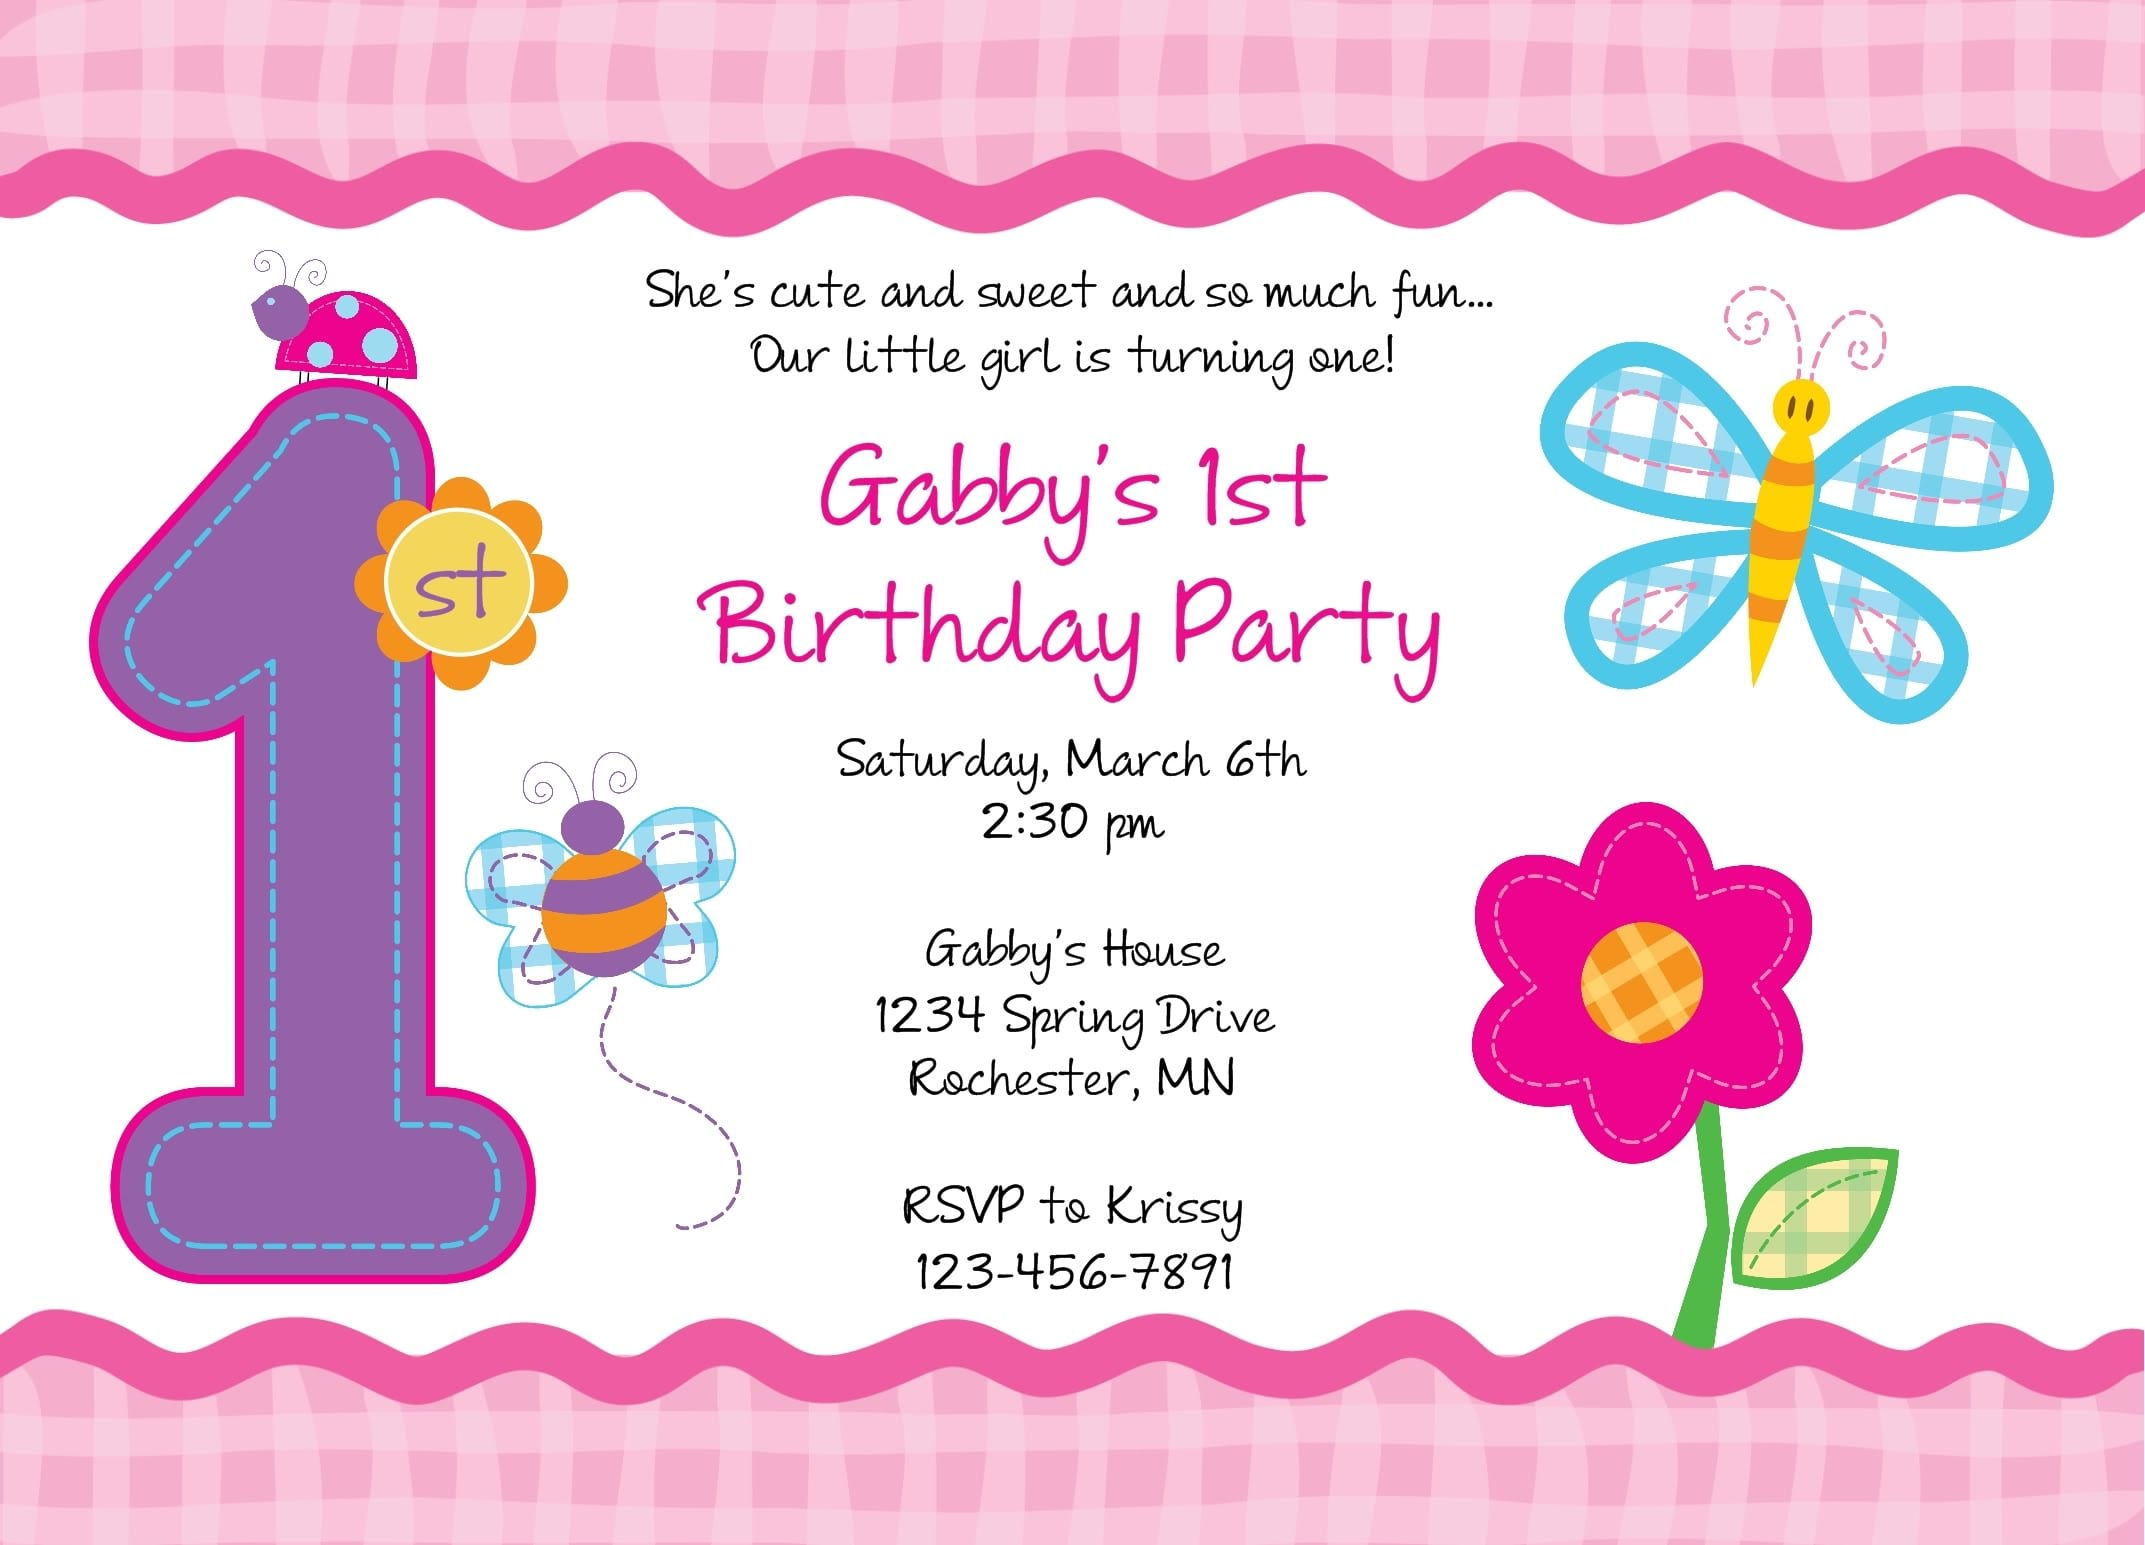 First Birthday Invitation Free Template einmaleinshaus – First Birthday Invitation Templates Free